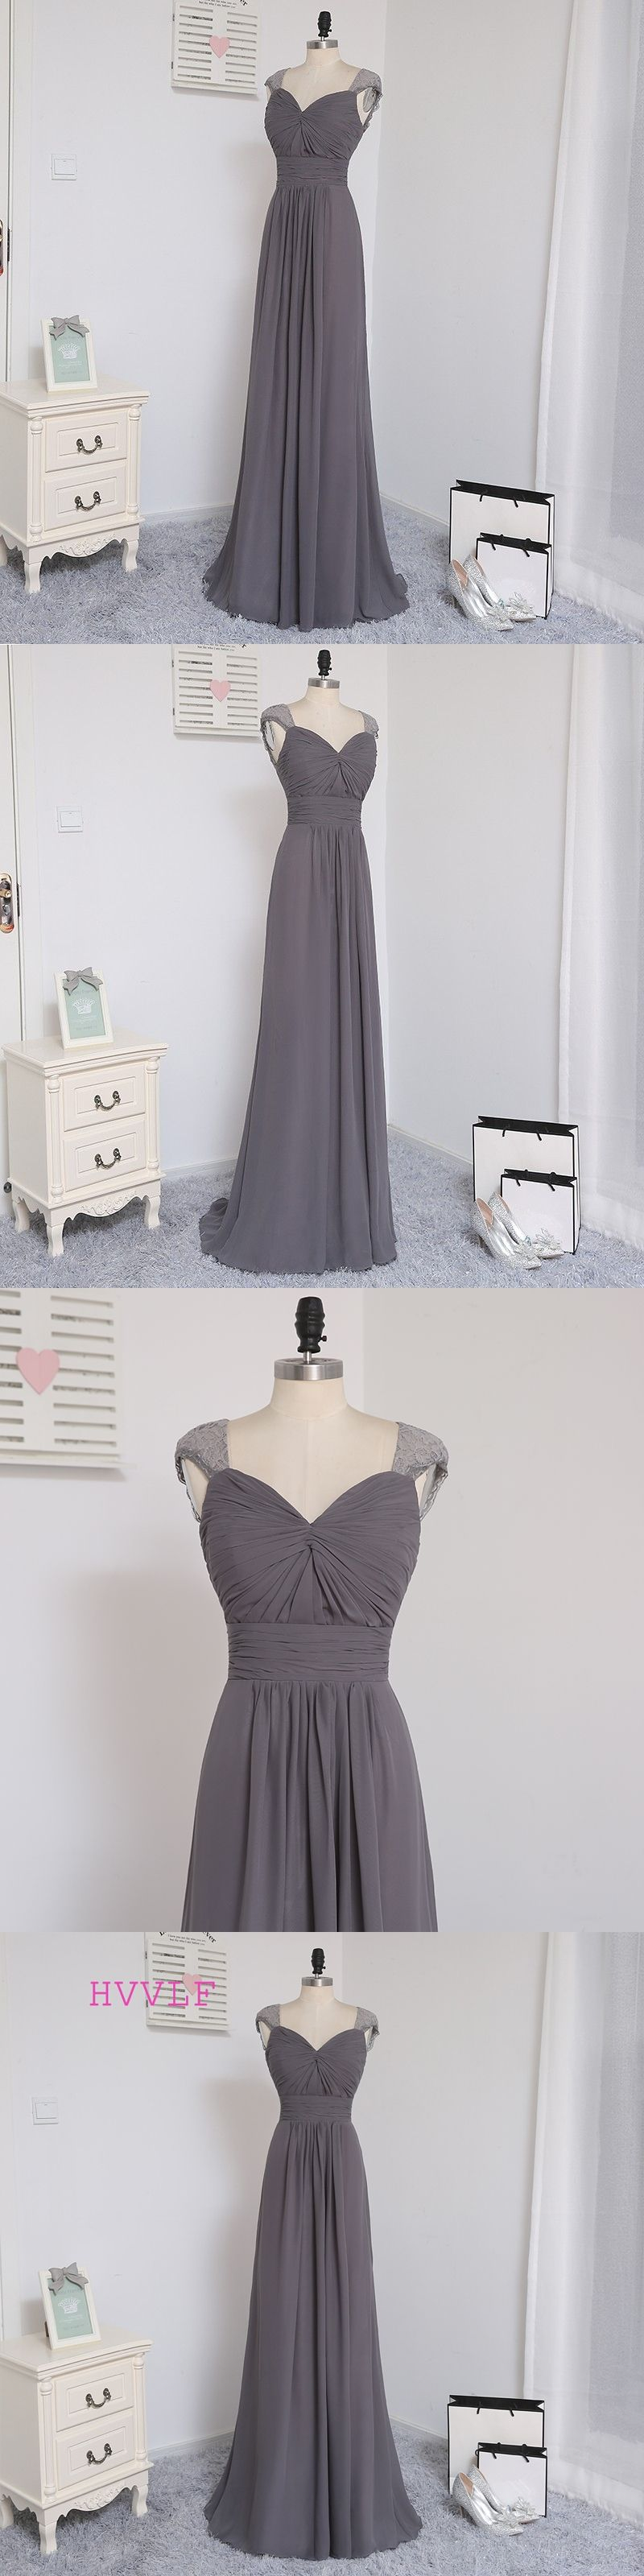 HVVLF 2018 Cheap Bridesmaid Dresses Under 50 A-line Cap Sleeves Gray Chiffon  Lace Open 035a2e51a738